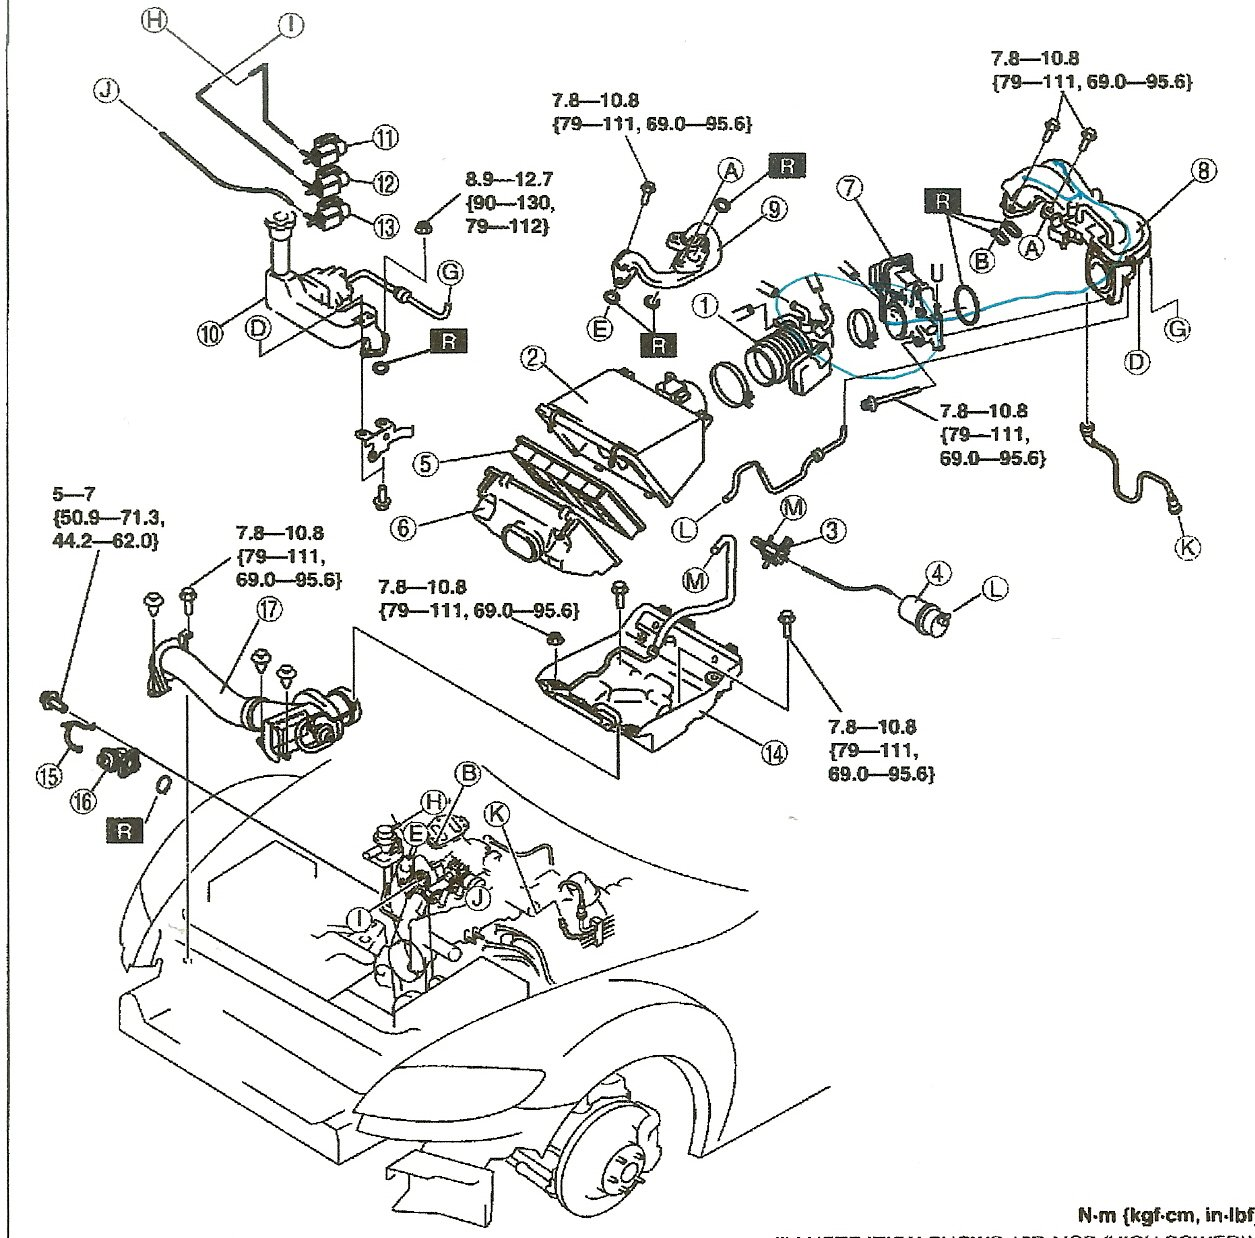 mazda rx 8 fuel system diagram  mazda  free engine image